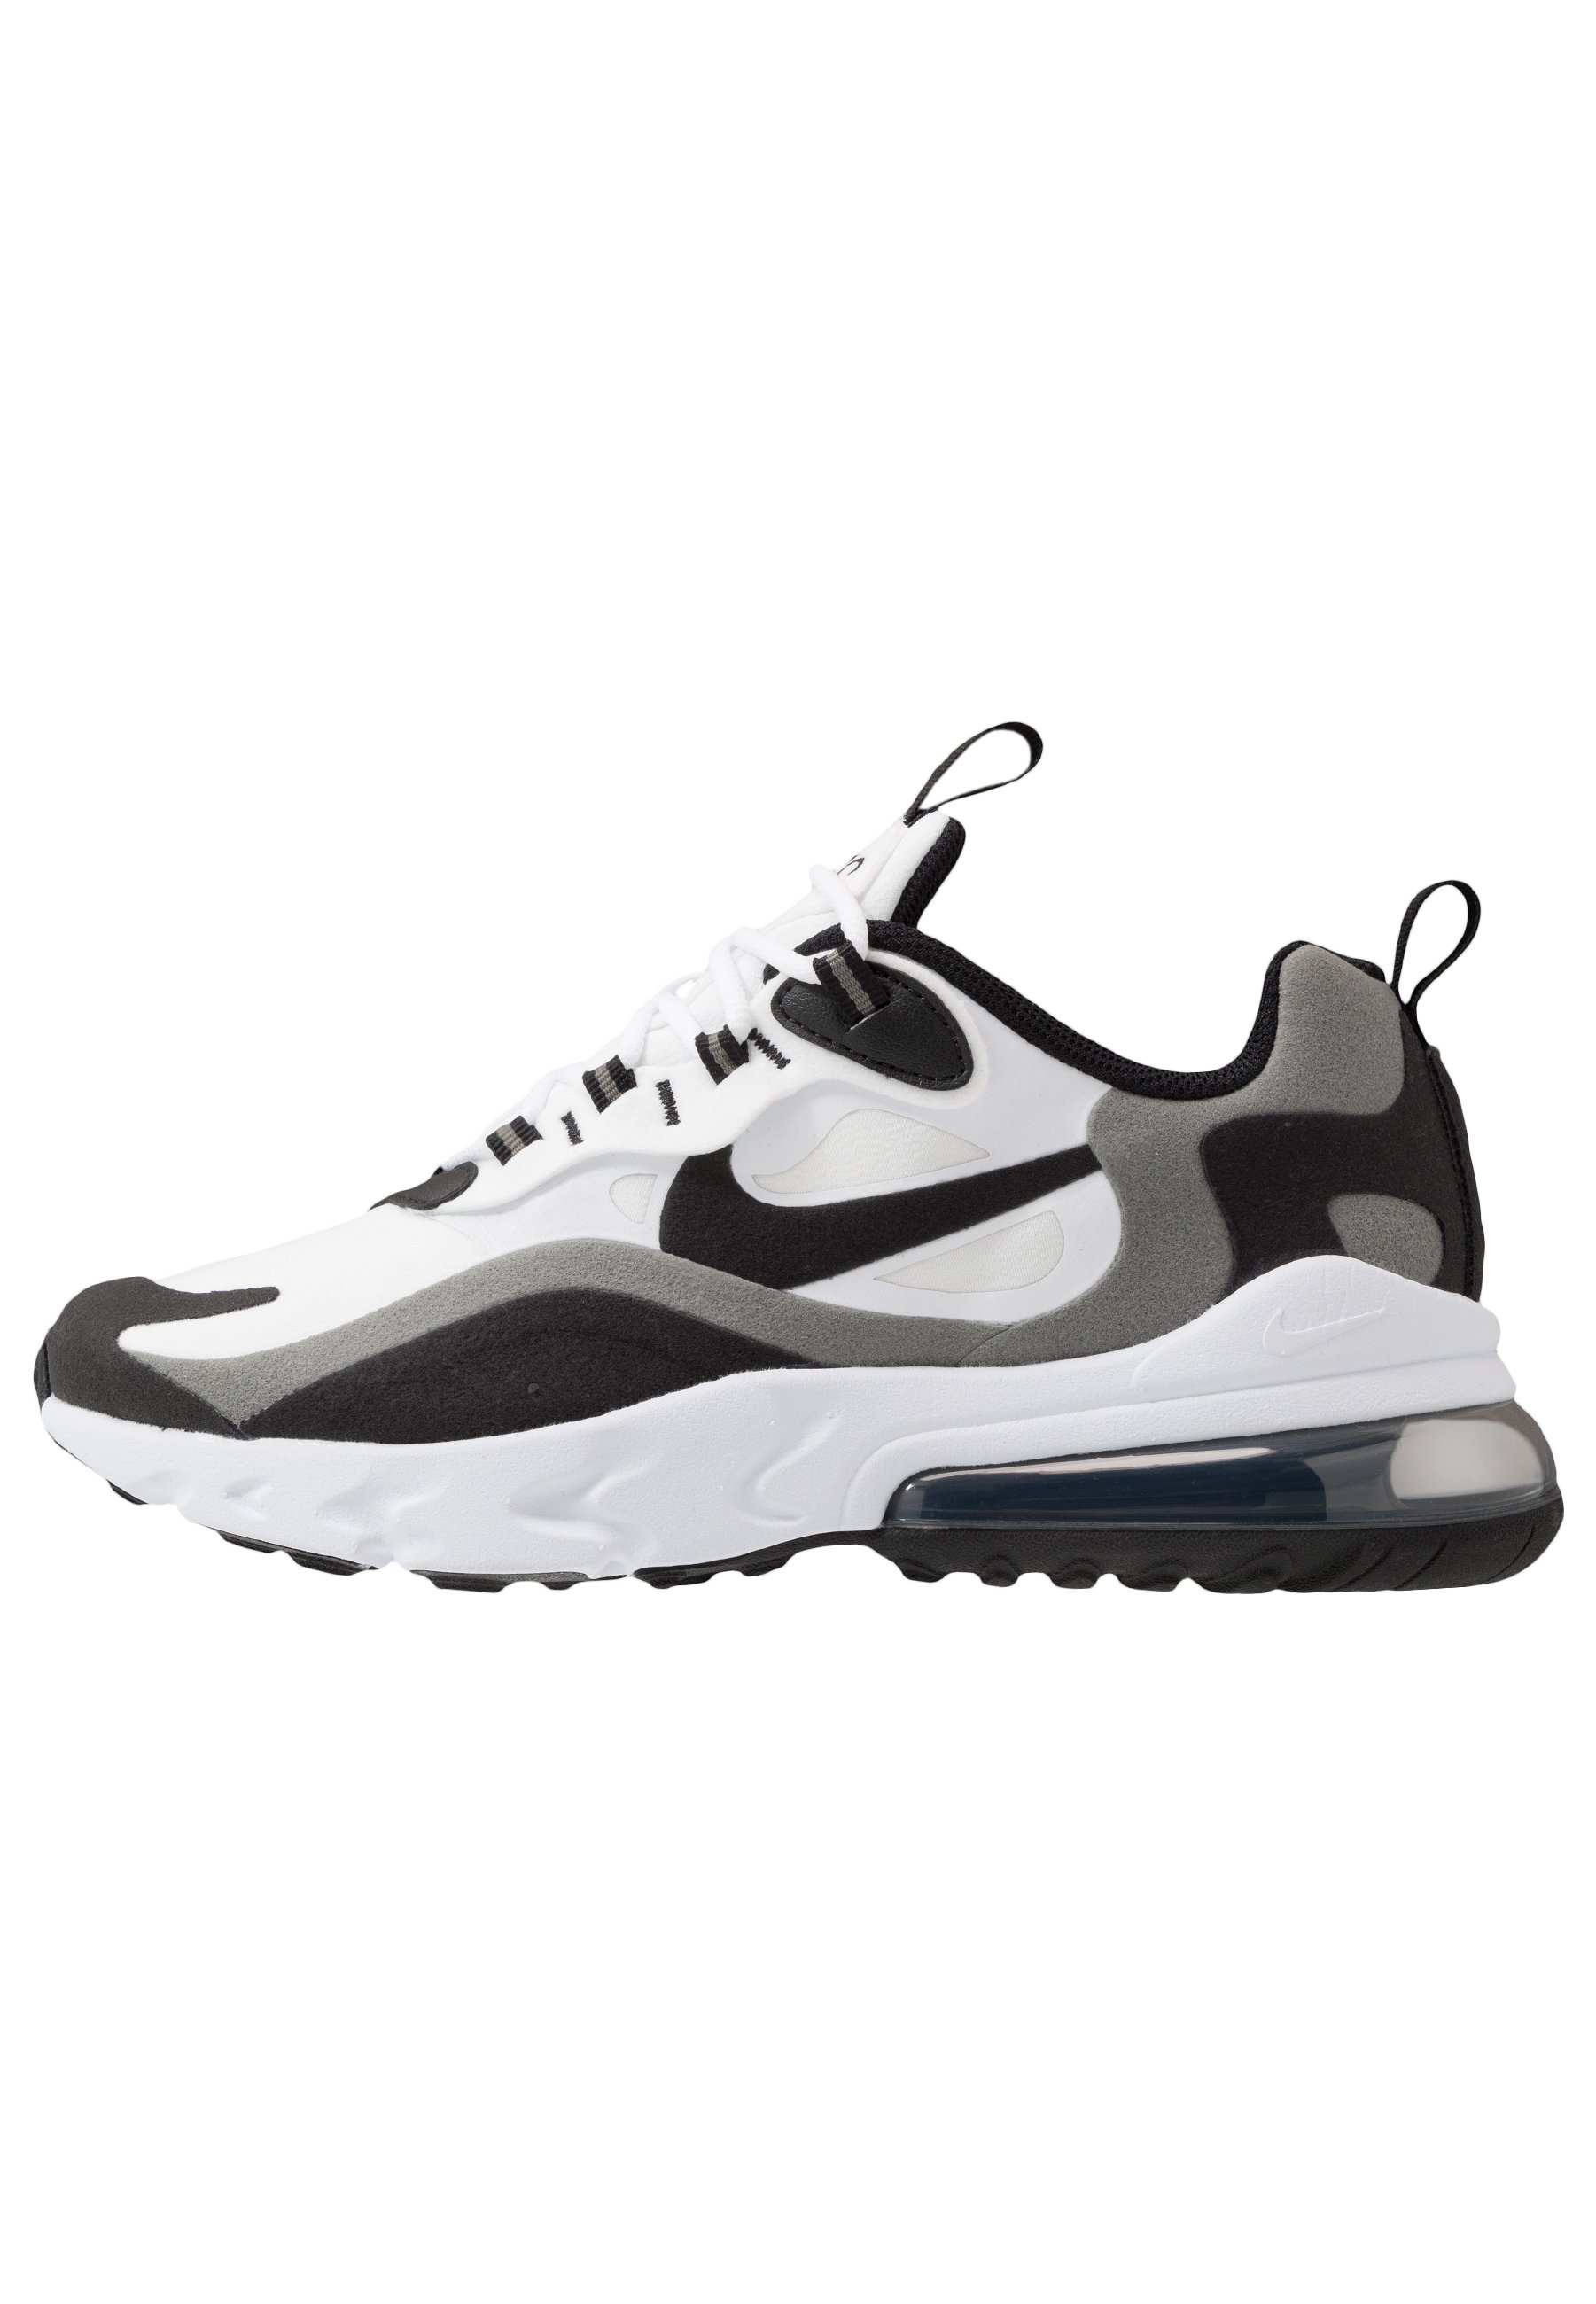 AIR MAX 270 REACT Sneakers laag whiteblackmetallic pewter